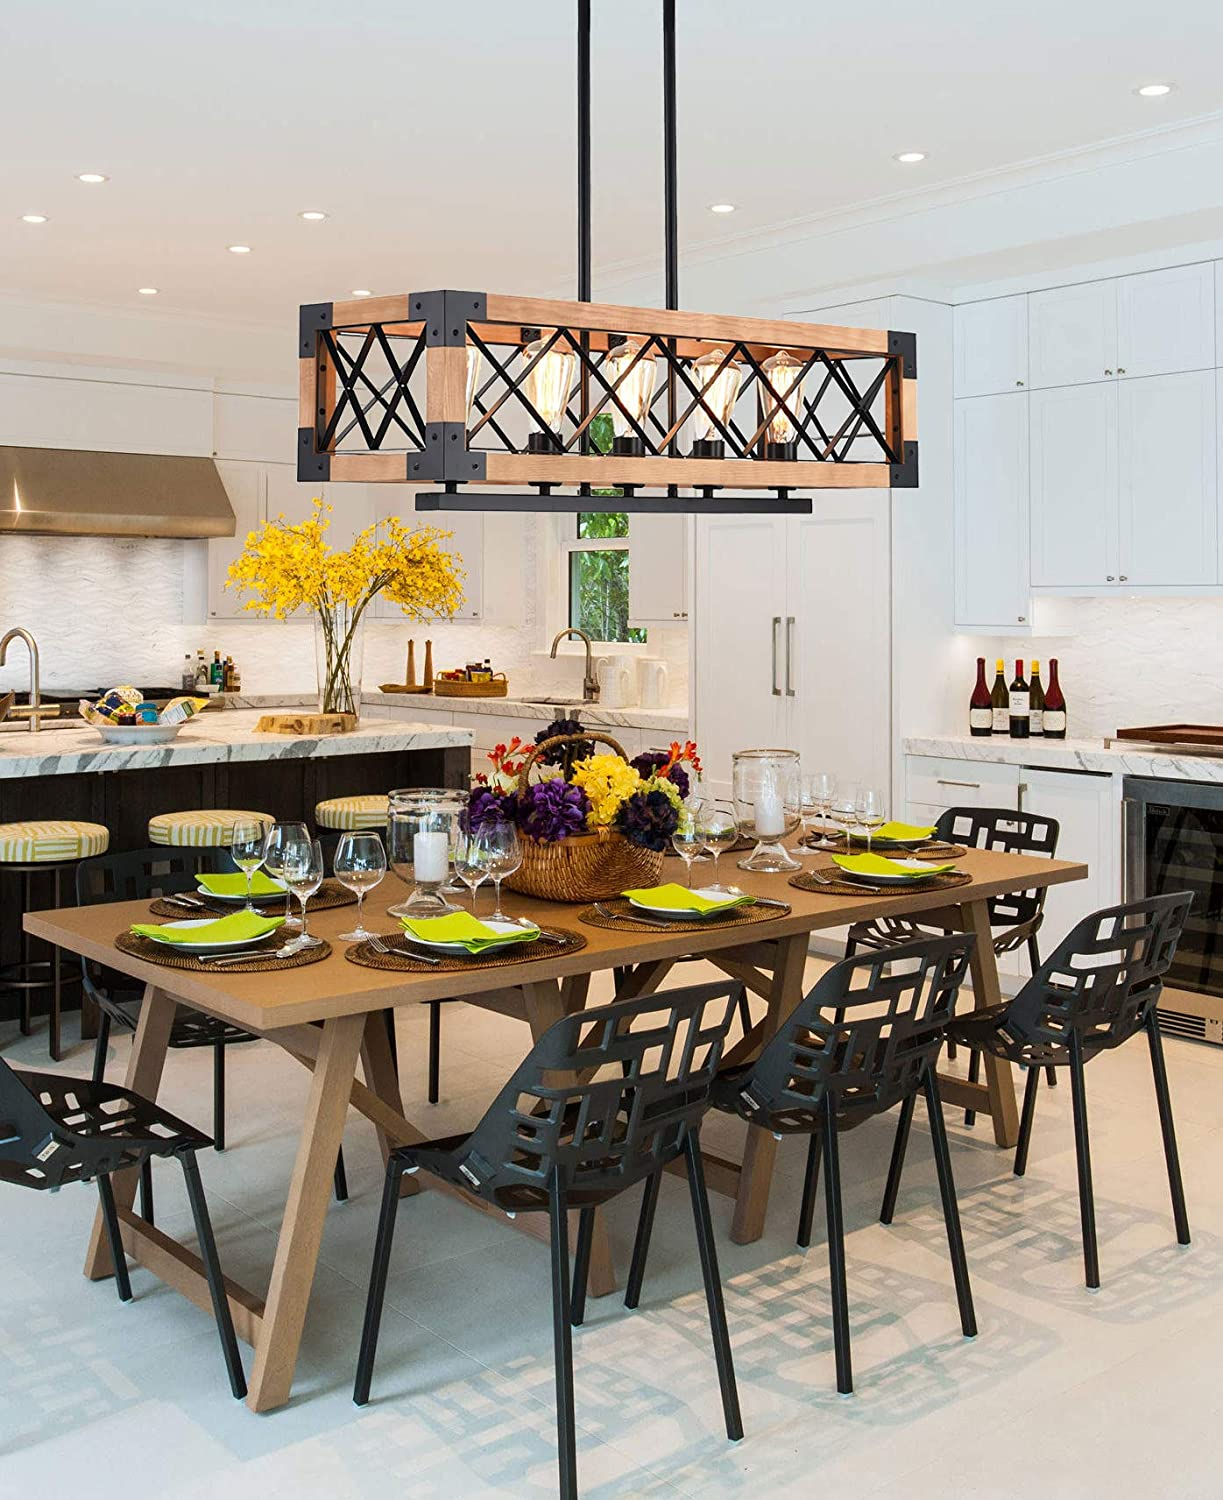 Industrial Rustic Wood Metal Frame Hanging Ceiling Chandelier 5-Light Farmhouse Linear Pendant Light Fixtures for Dining Room reesenLight Kitchen Island Lighting